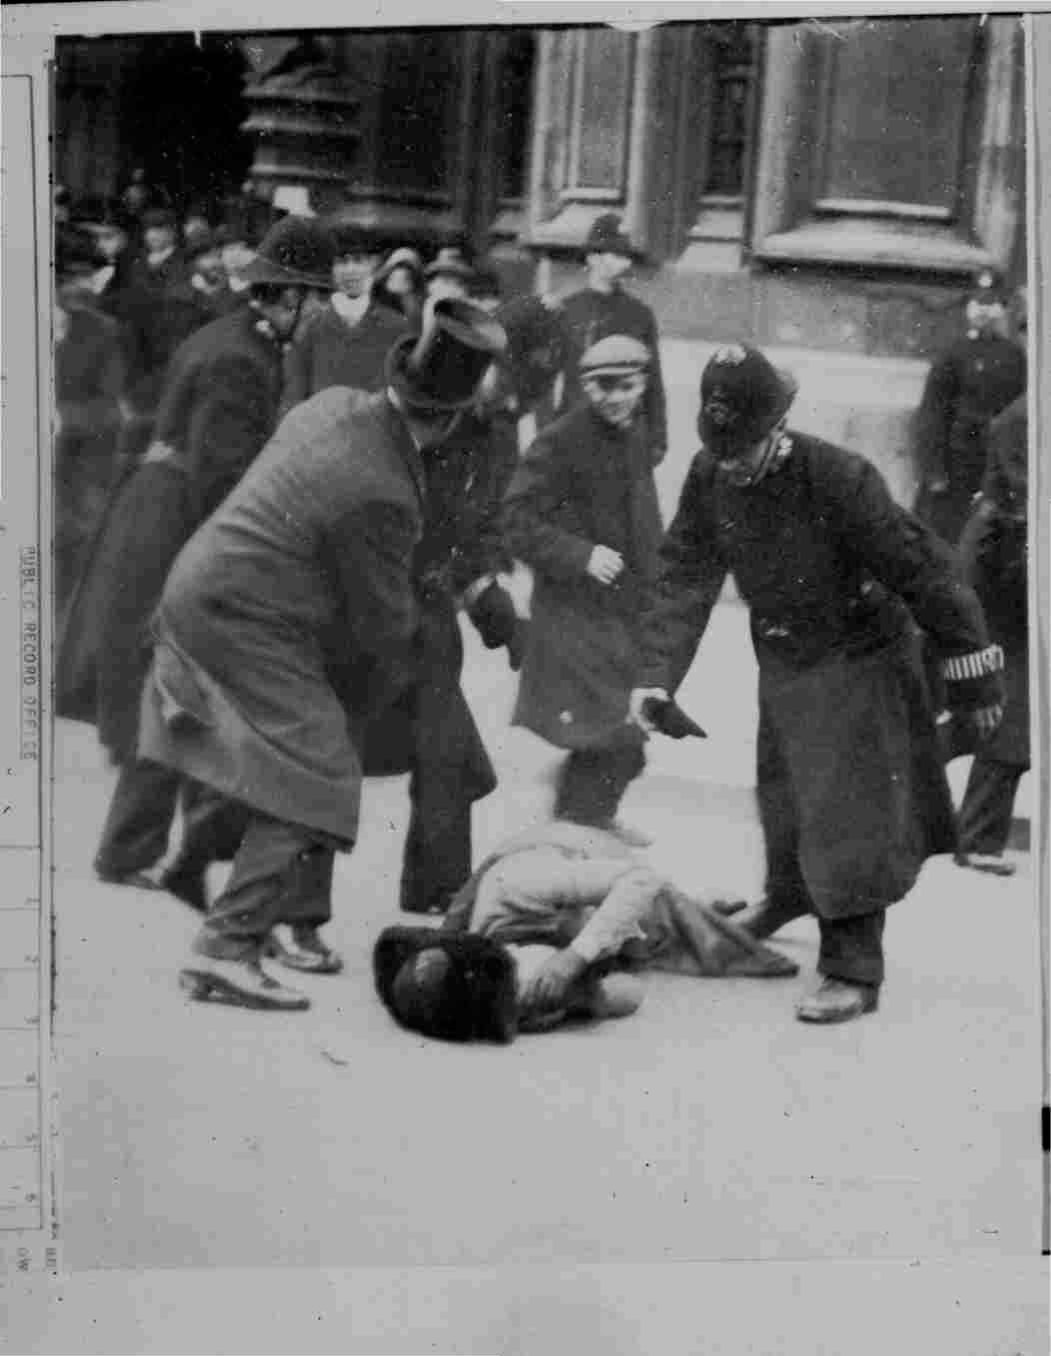 Black-friday suffragette march attacked by police